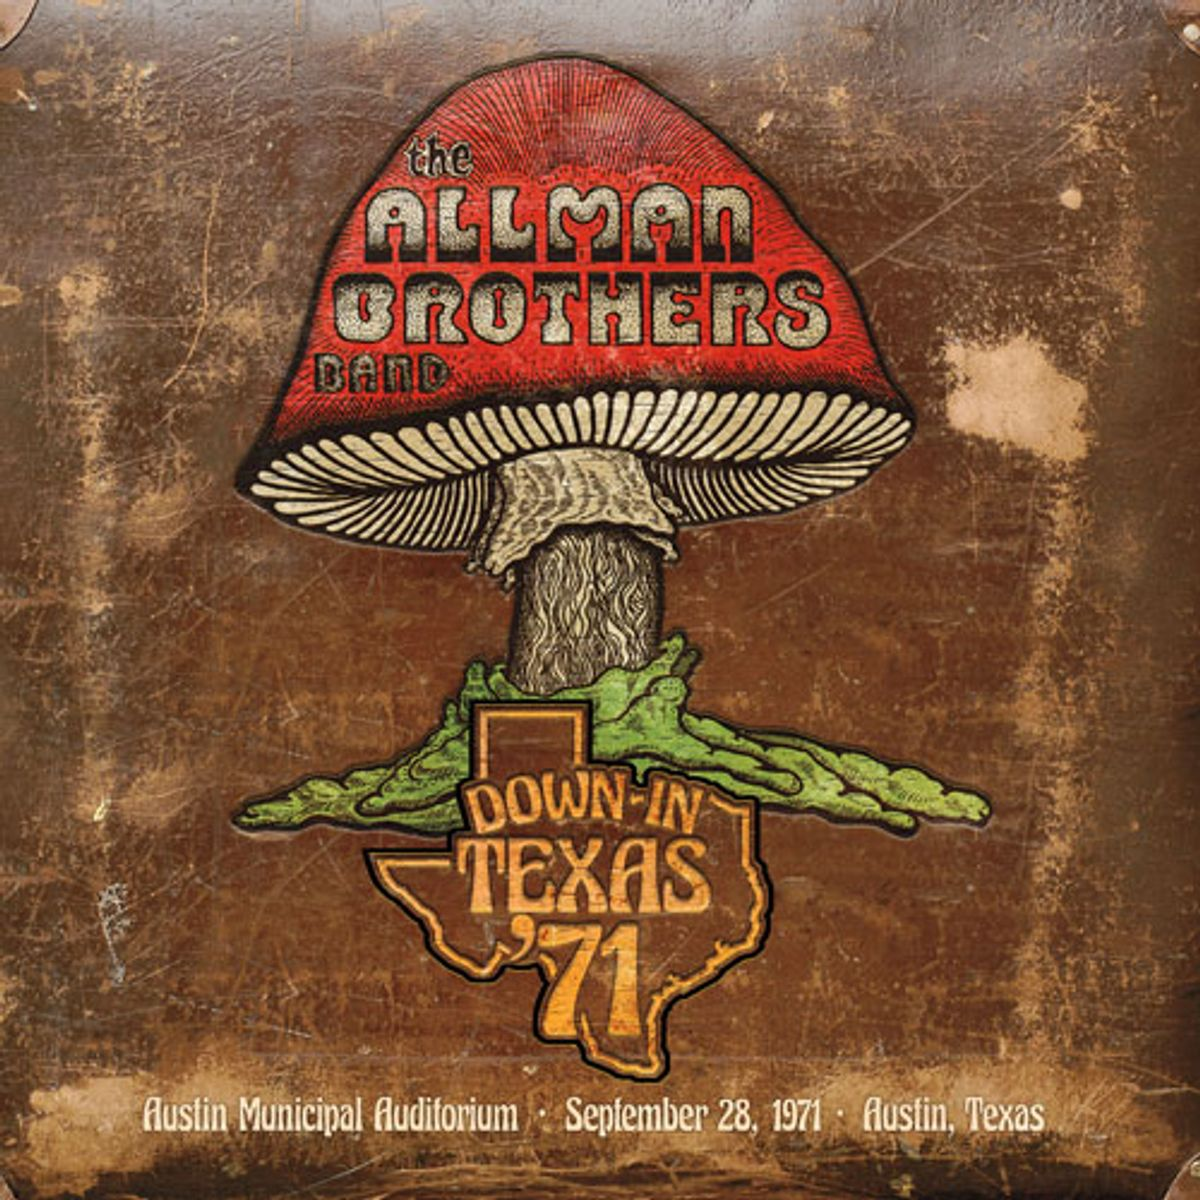 Allman Brothers Band to Release Down in Texas '71